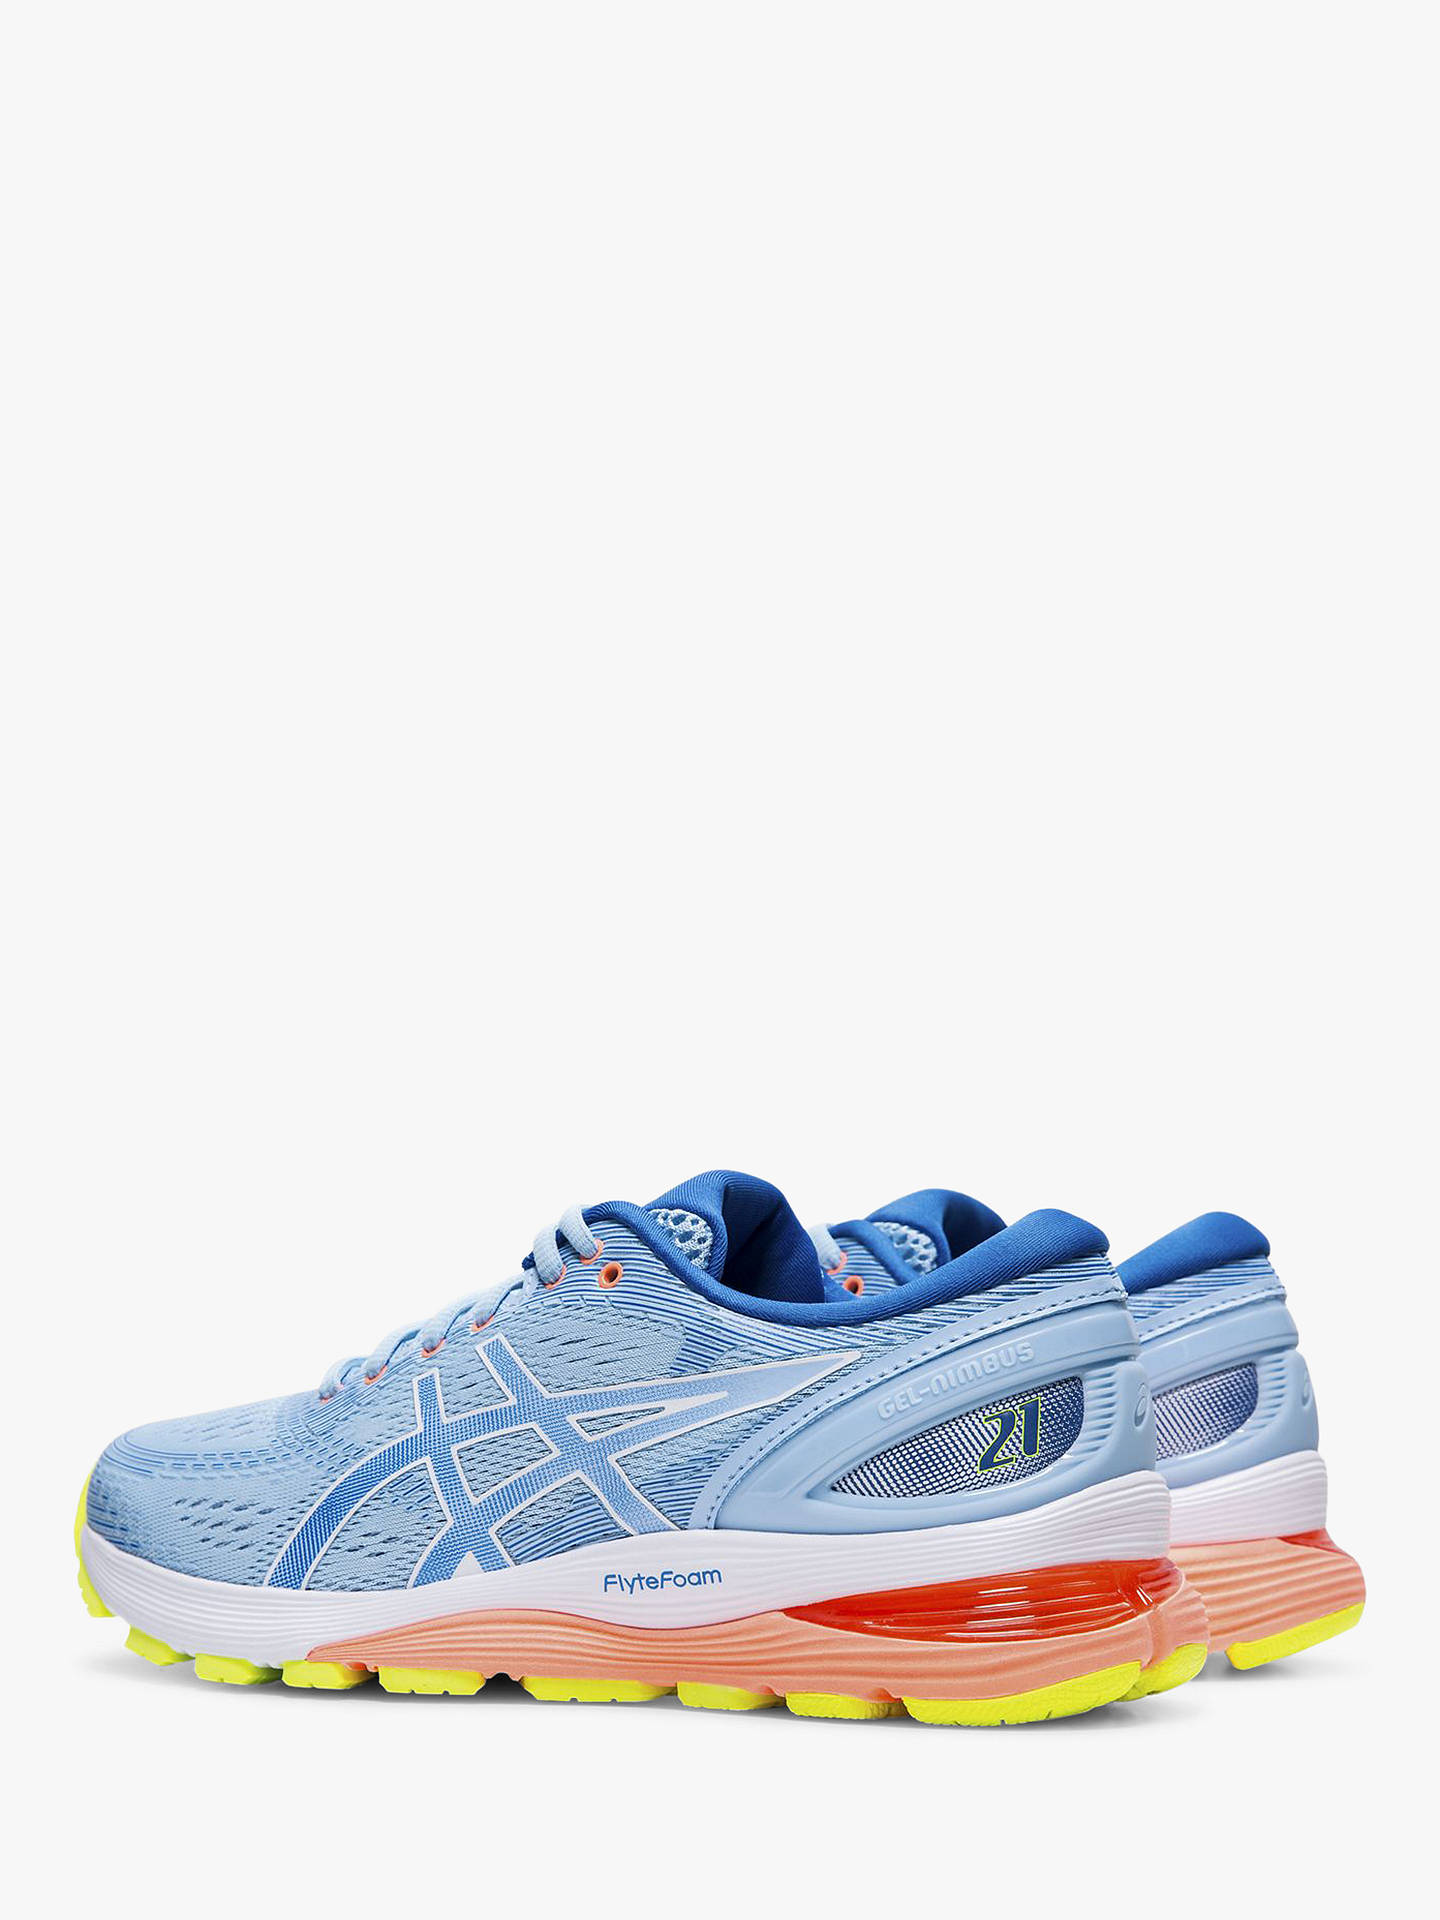 Buy ASICS GEL-NIMBUS 21 Women's Running Shoes, Blue/Lake Drive, 4 Online at johnlewis.com